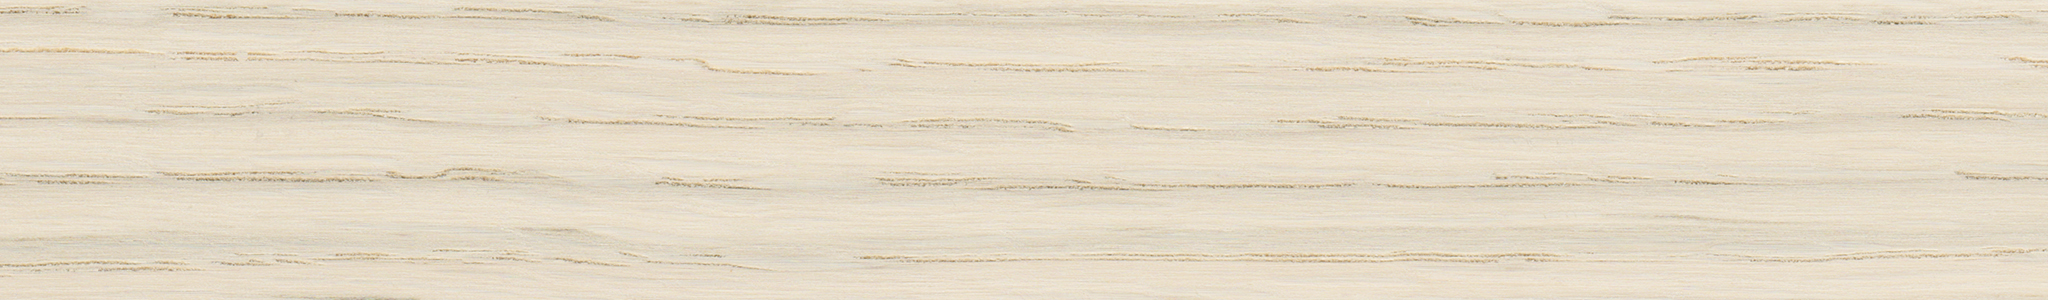 HD 74020 Veneer Edge American Oak Preglued